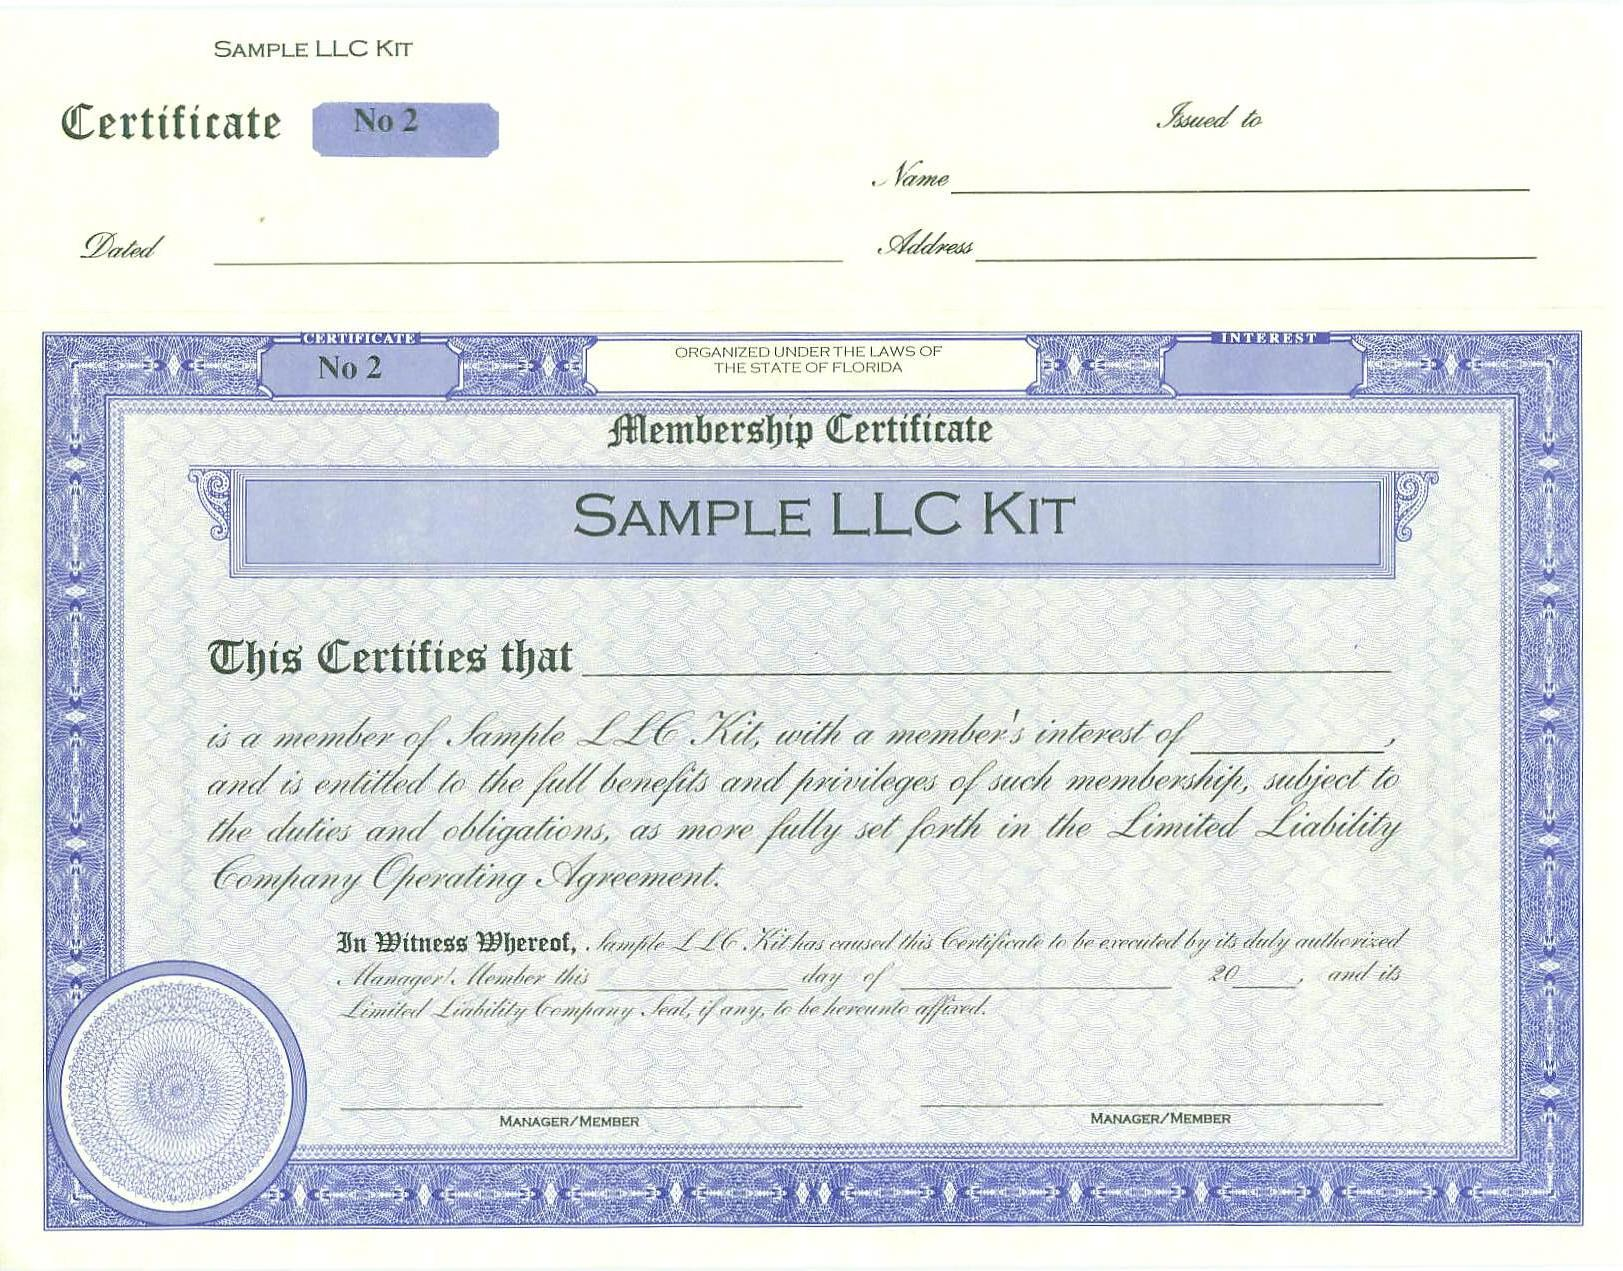 If Not Specified Then Blue Stock Or Membership Certificates Will Be Sent